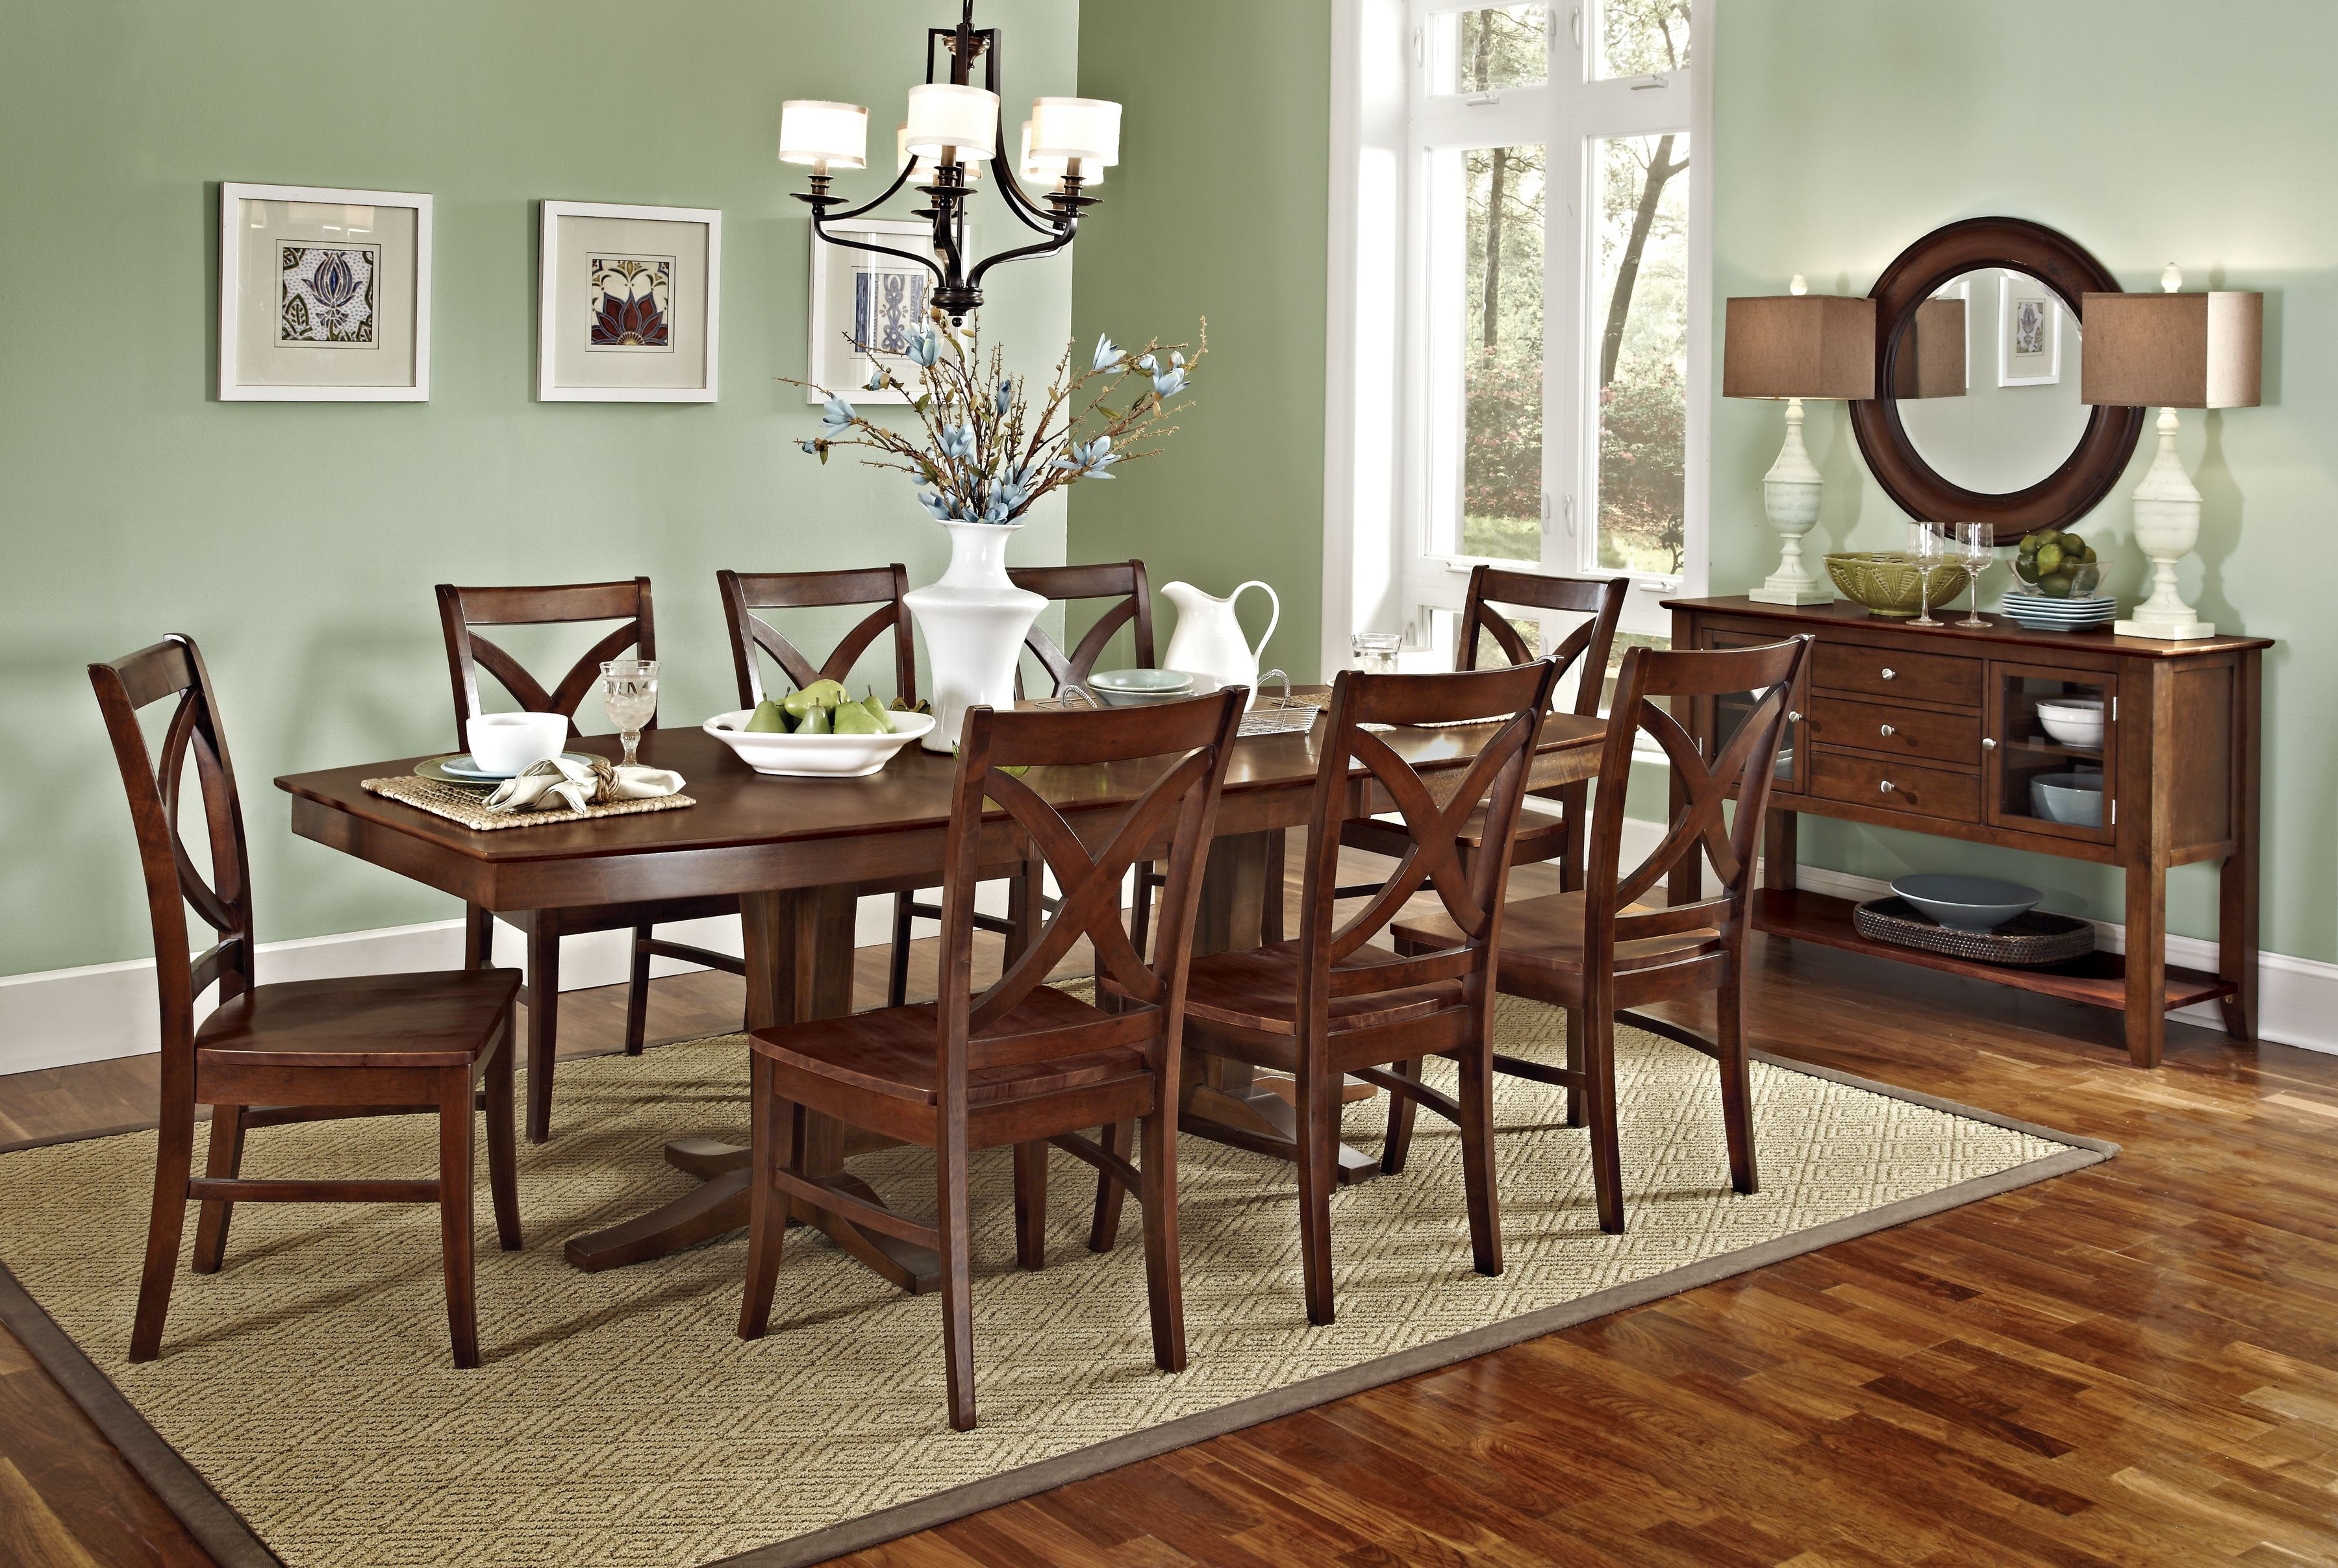 Cosmopolitan Collection By John Thomas Furniture Available Through Wood Crafted Furniture Anc Double Pedestal